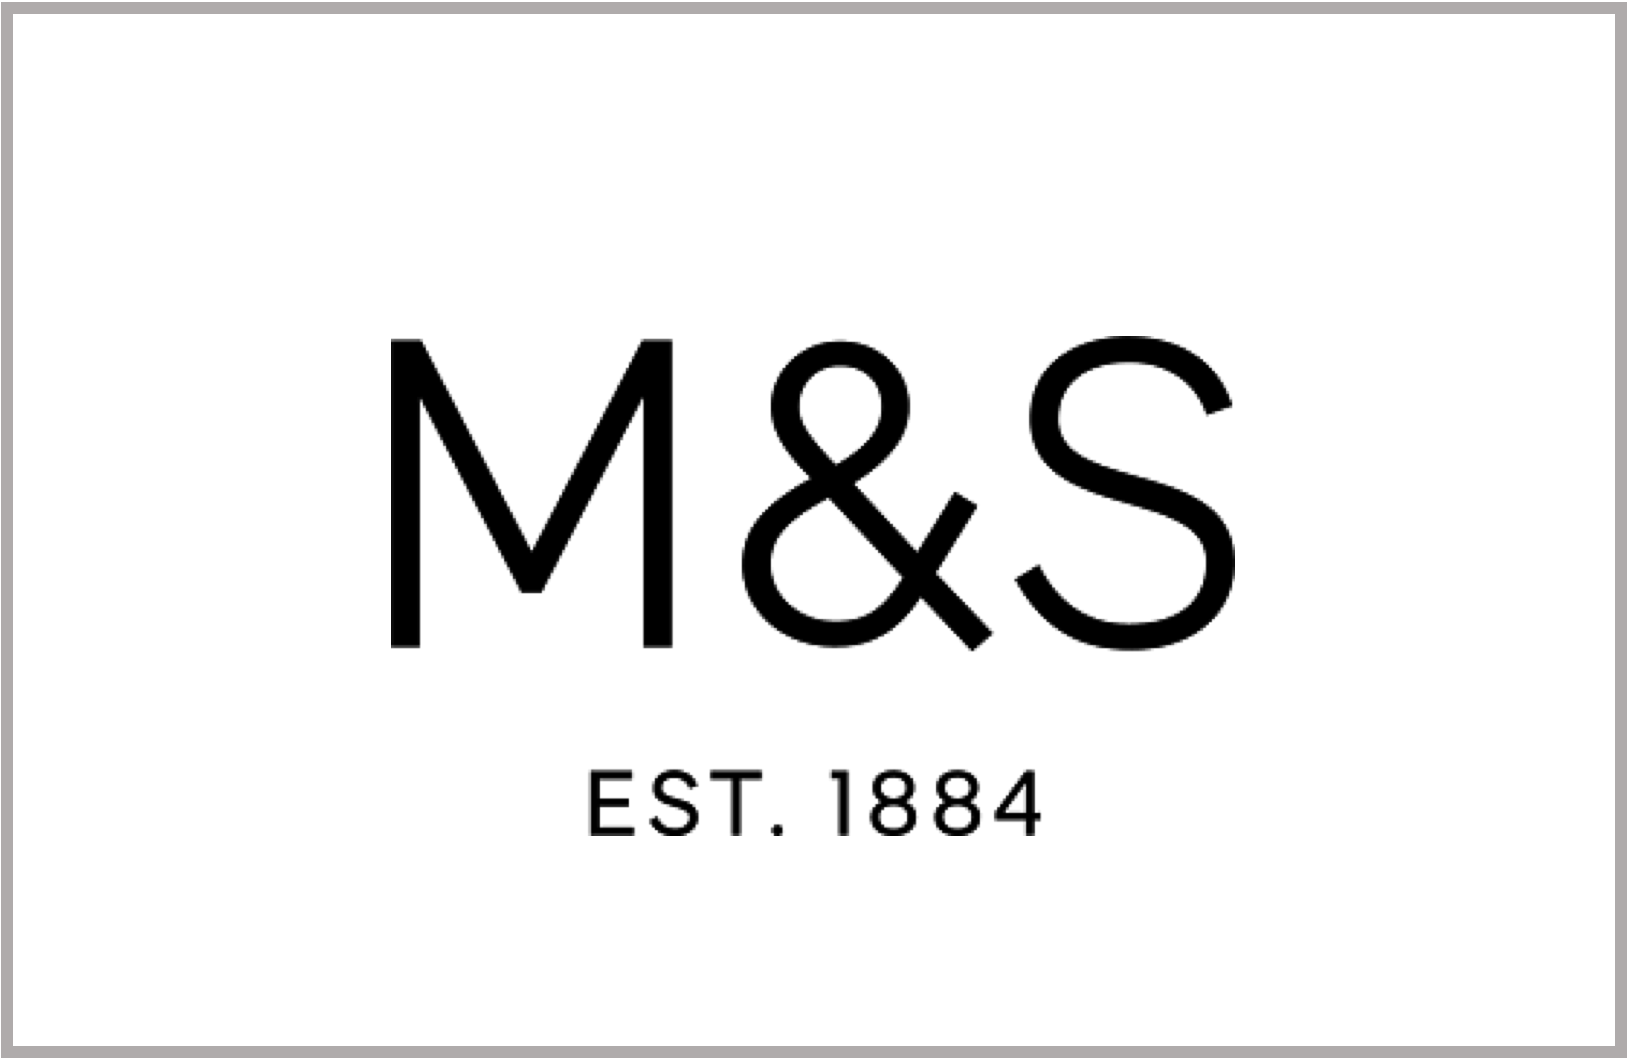 M&S - Gallery Block.png